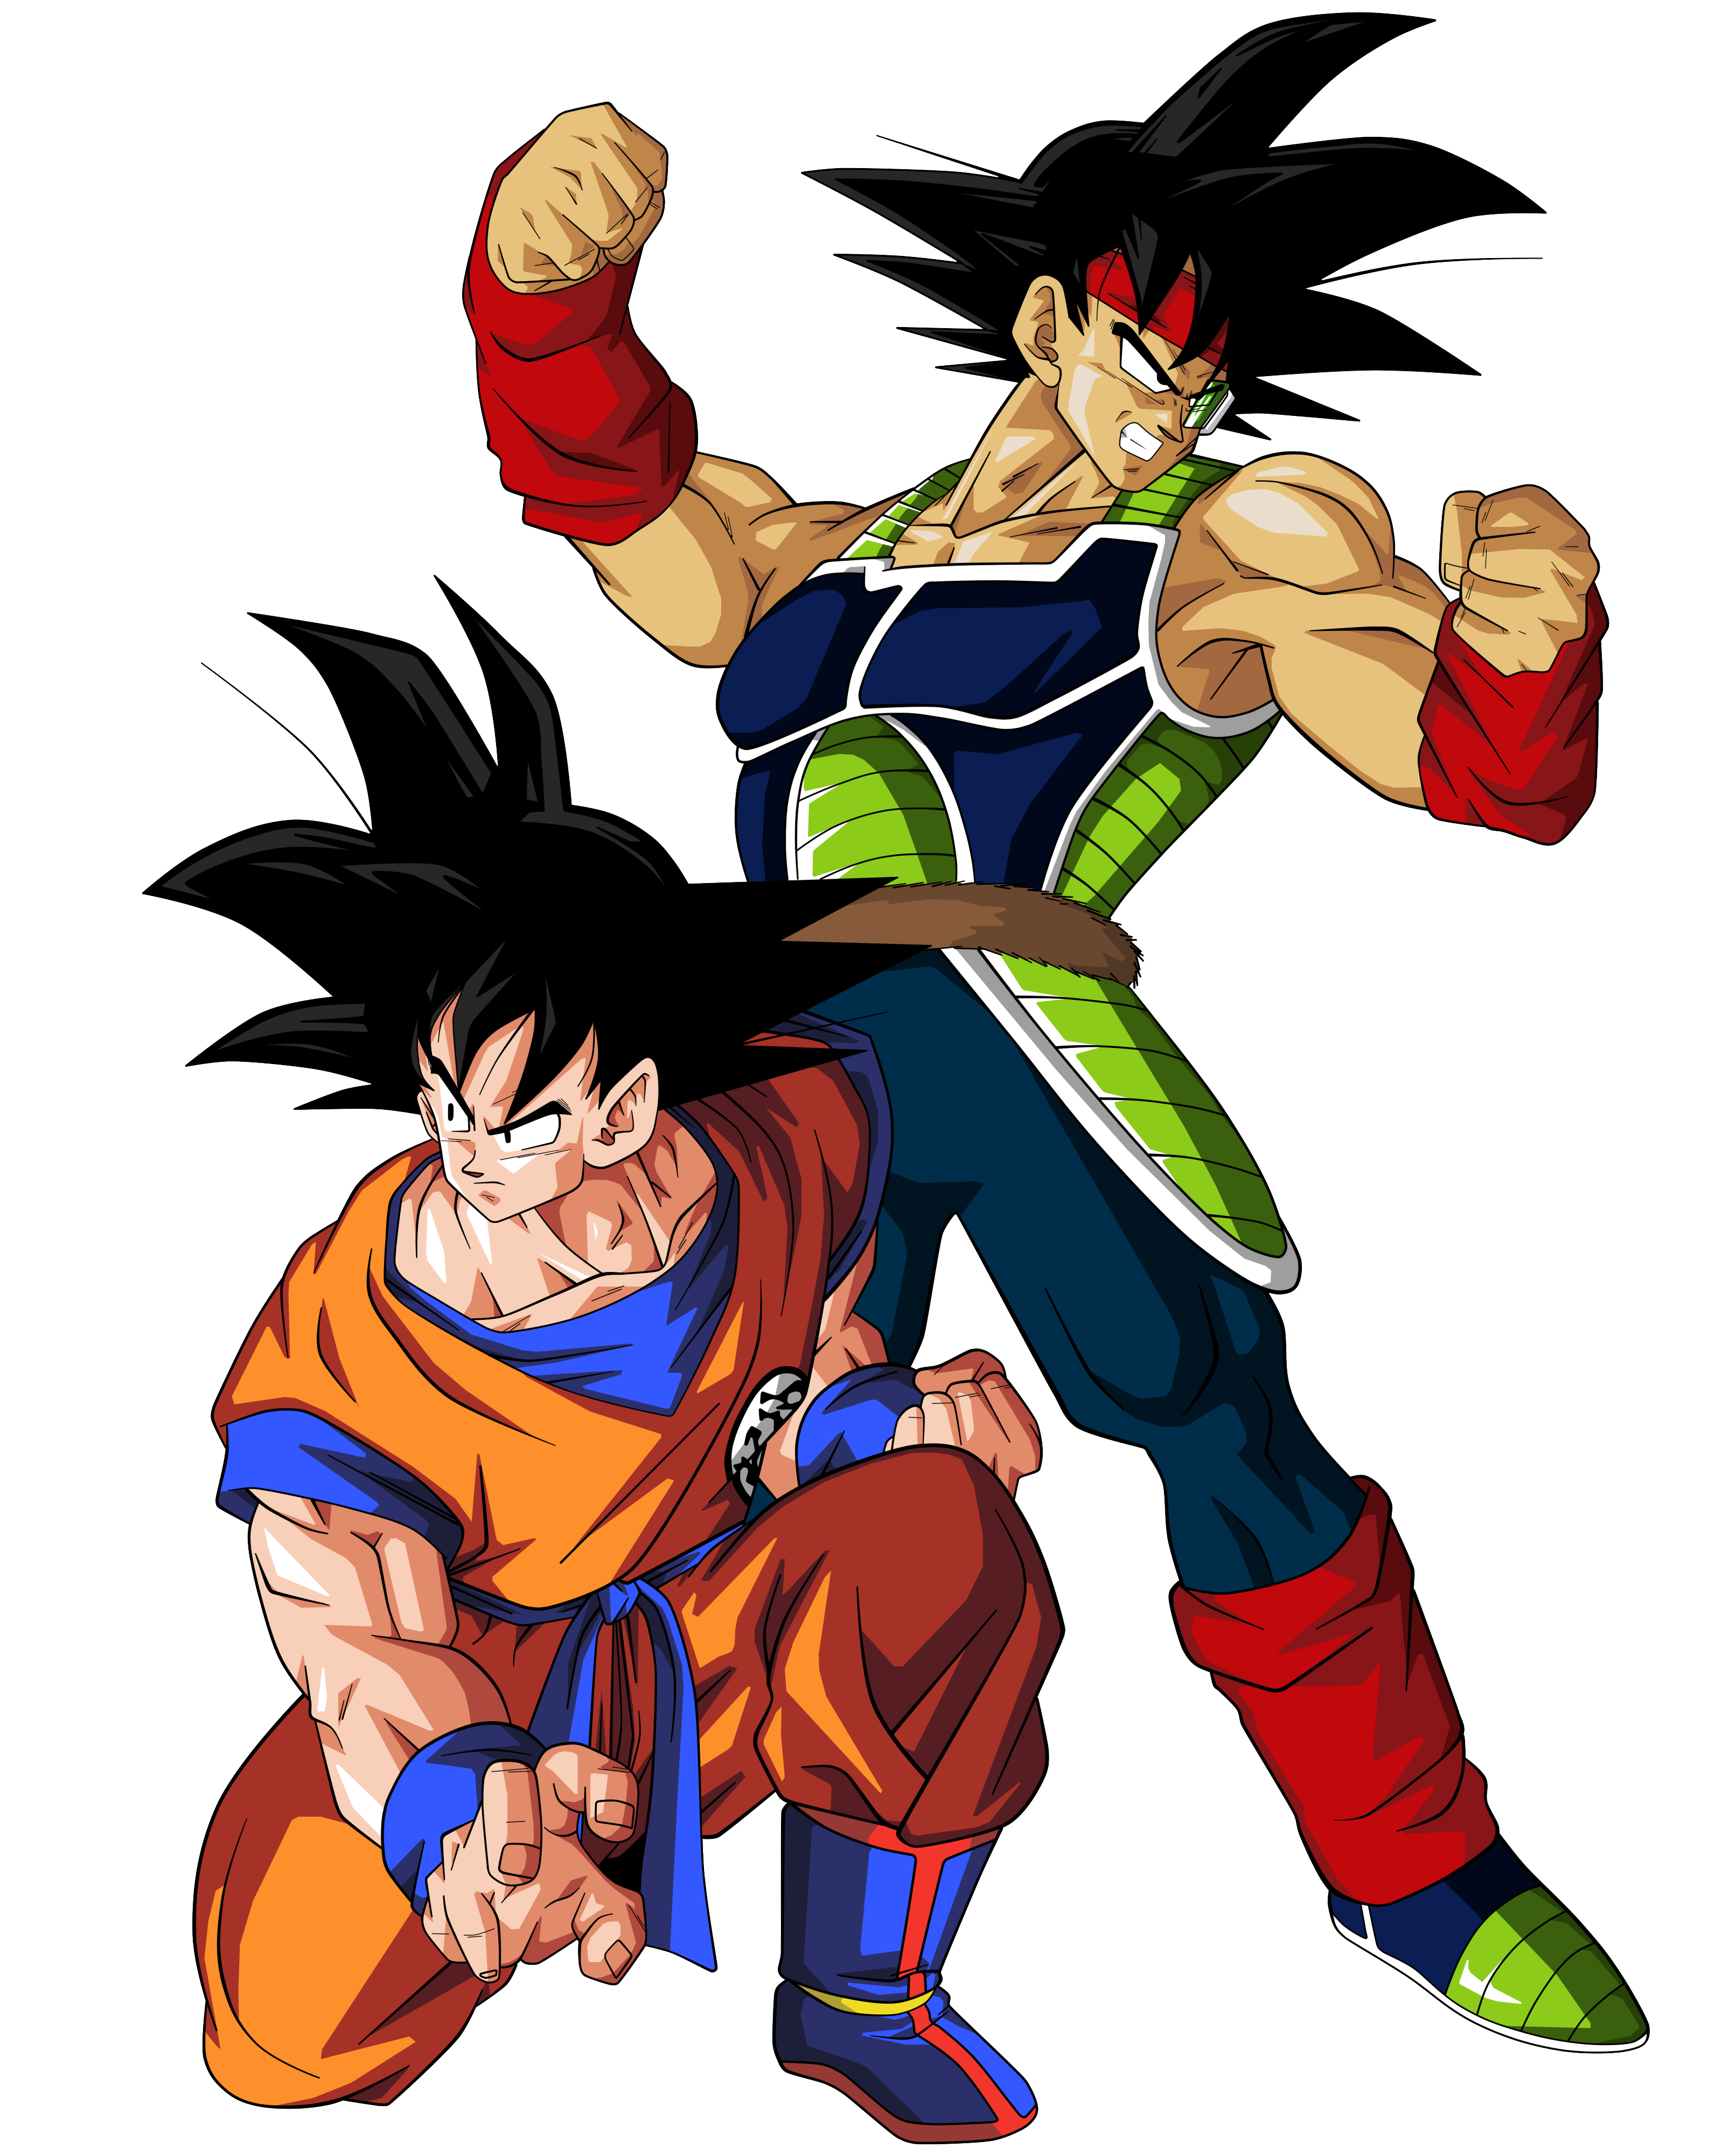 GOKU Y BARDOCK by BardockSonic on DeviantArt